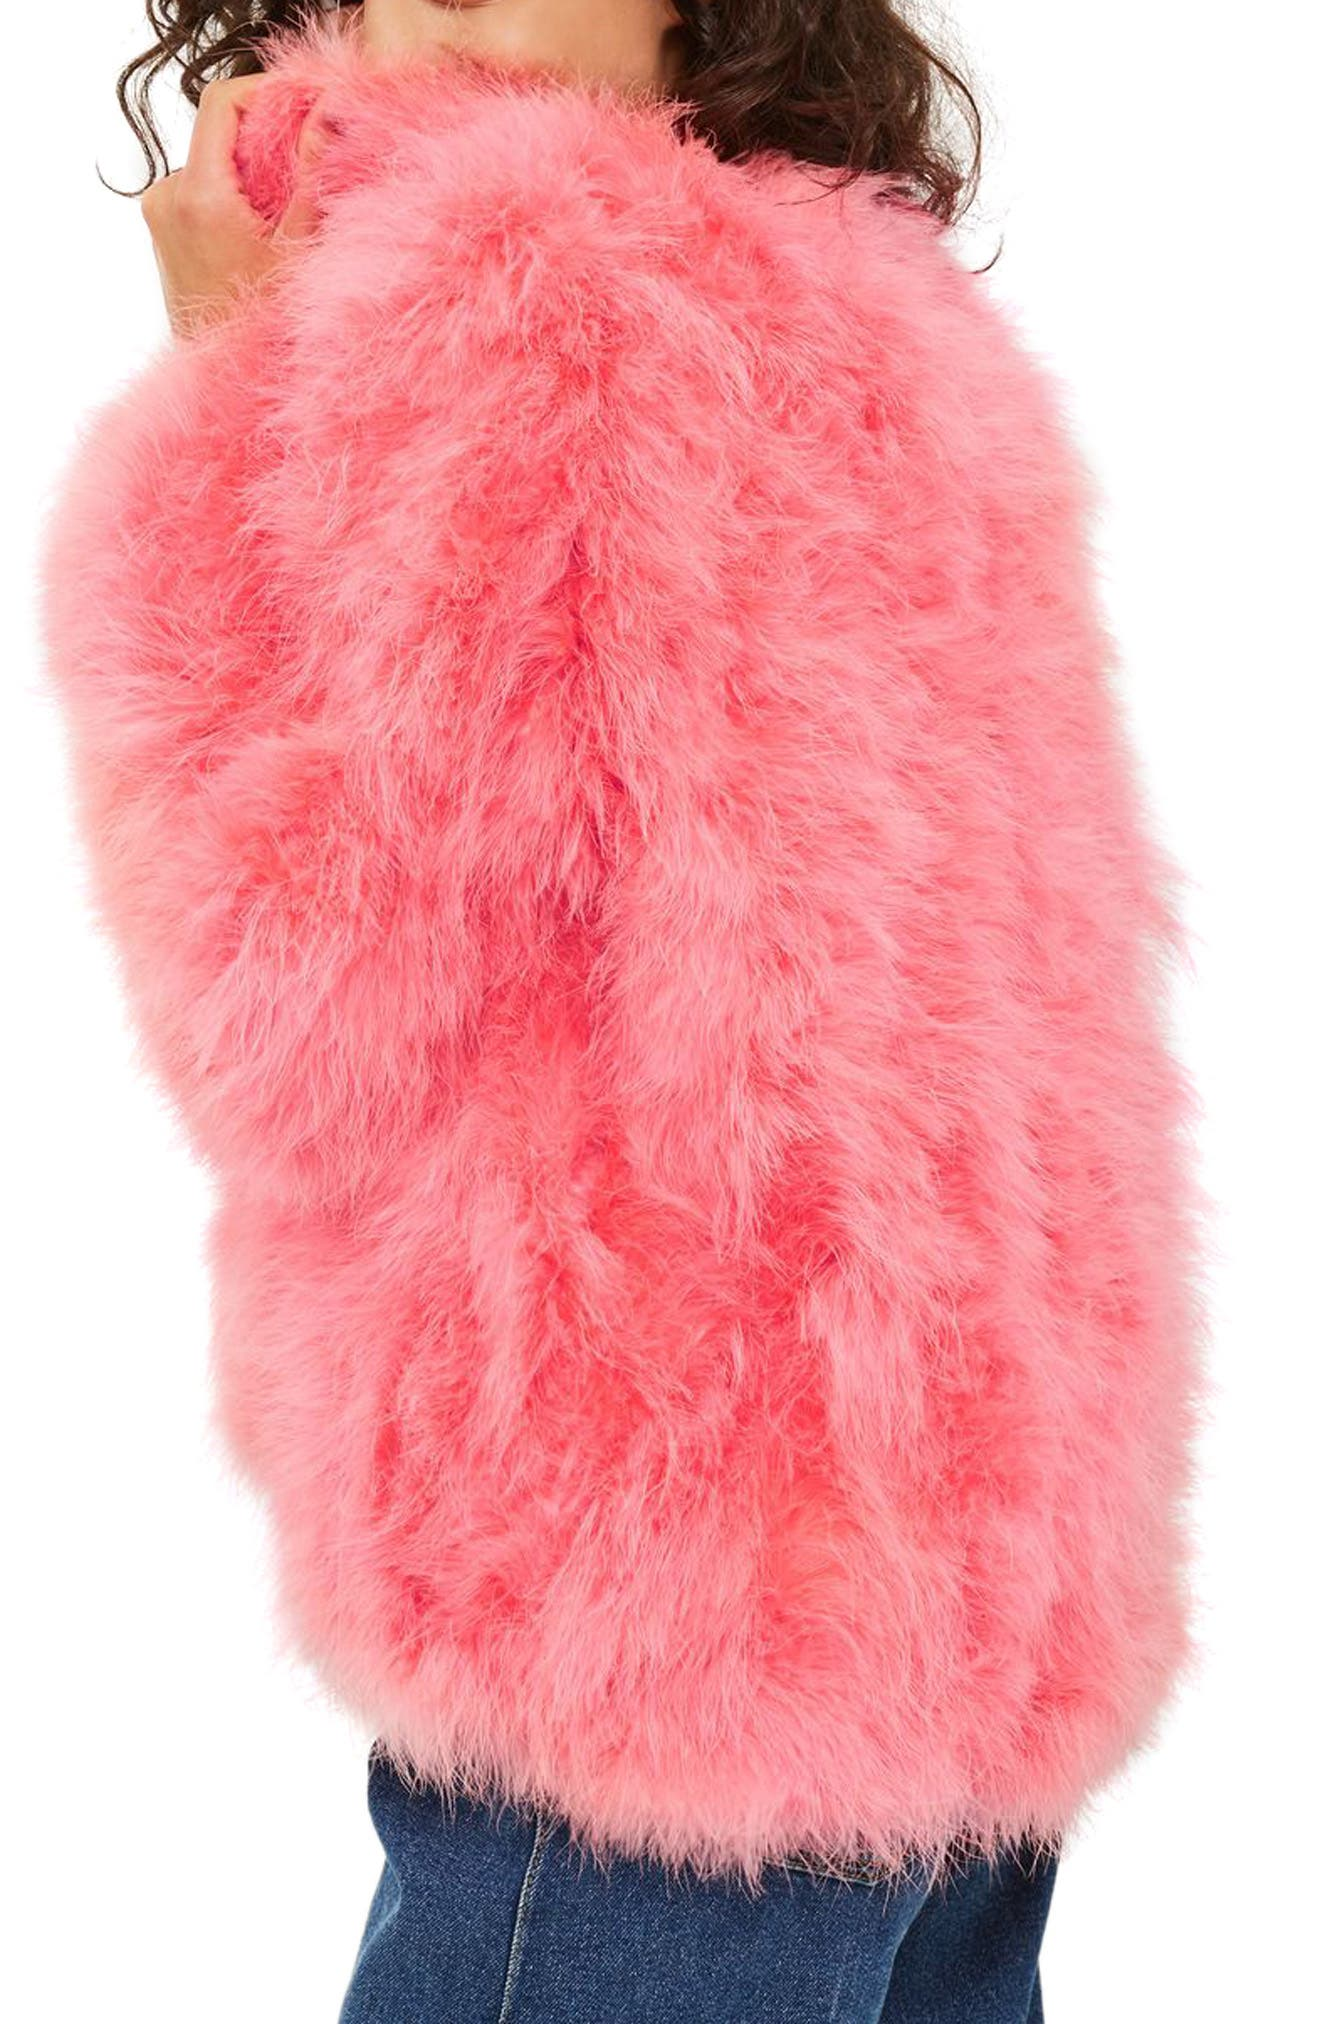 Marabou Feather Jacket,                             Alternate thumbnail 3, color,                             650